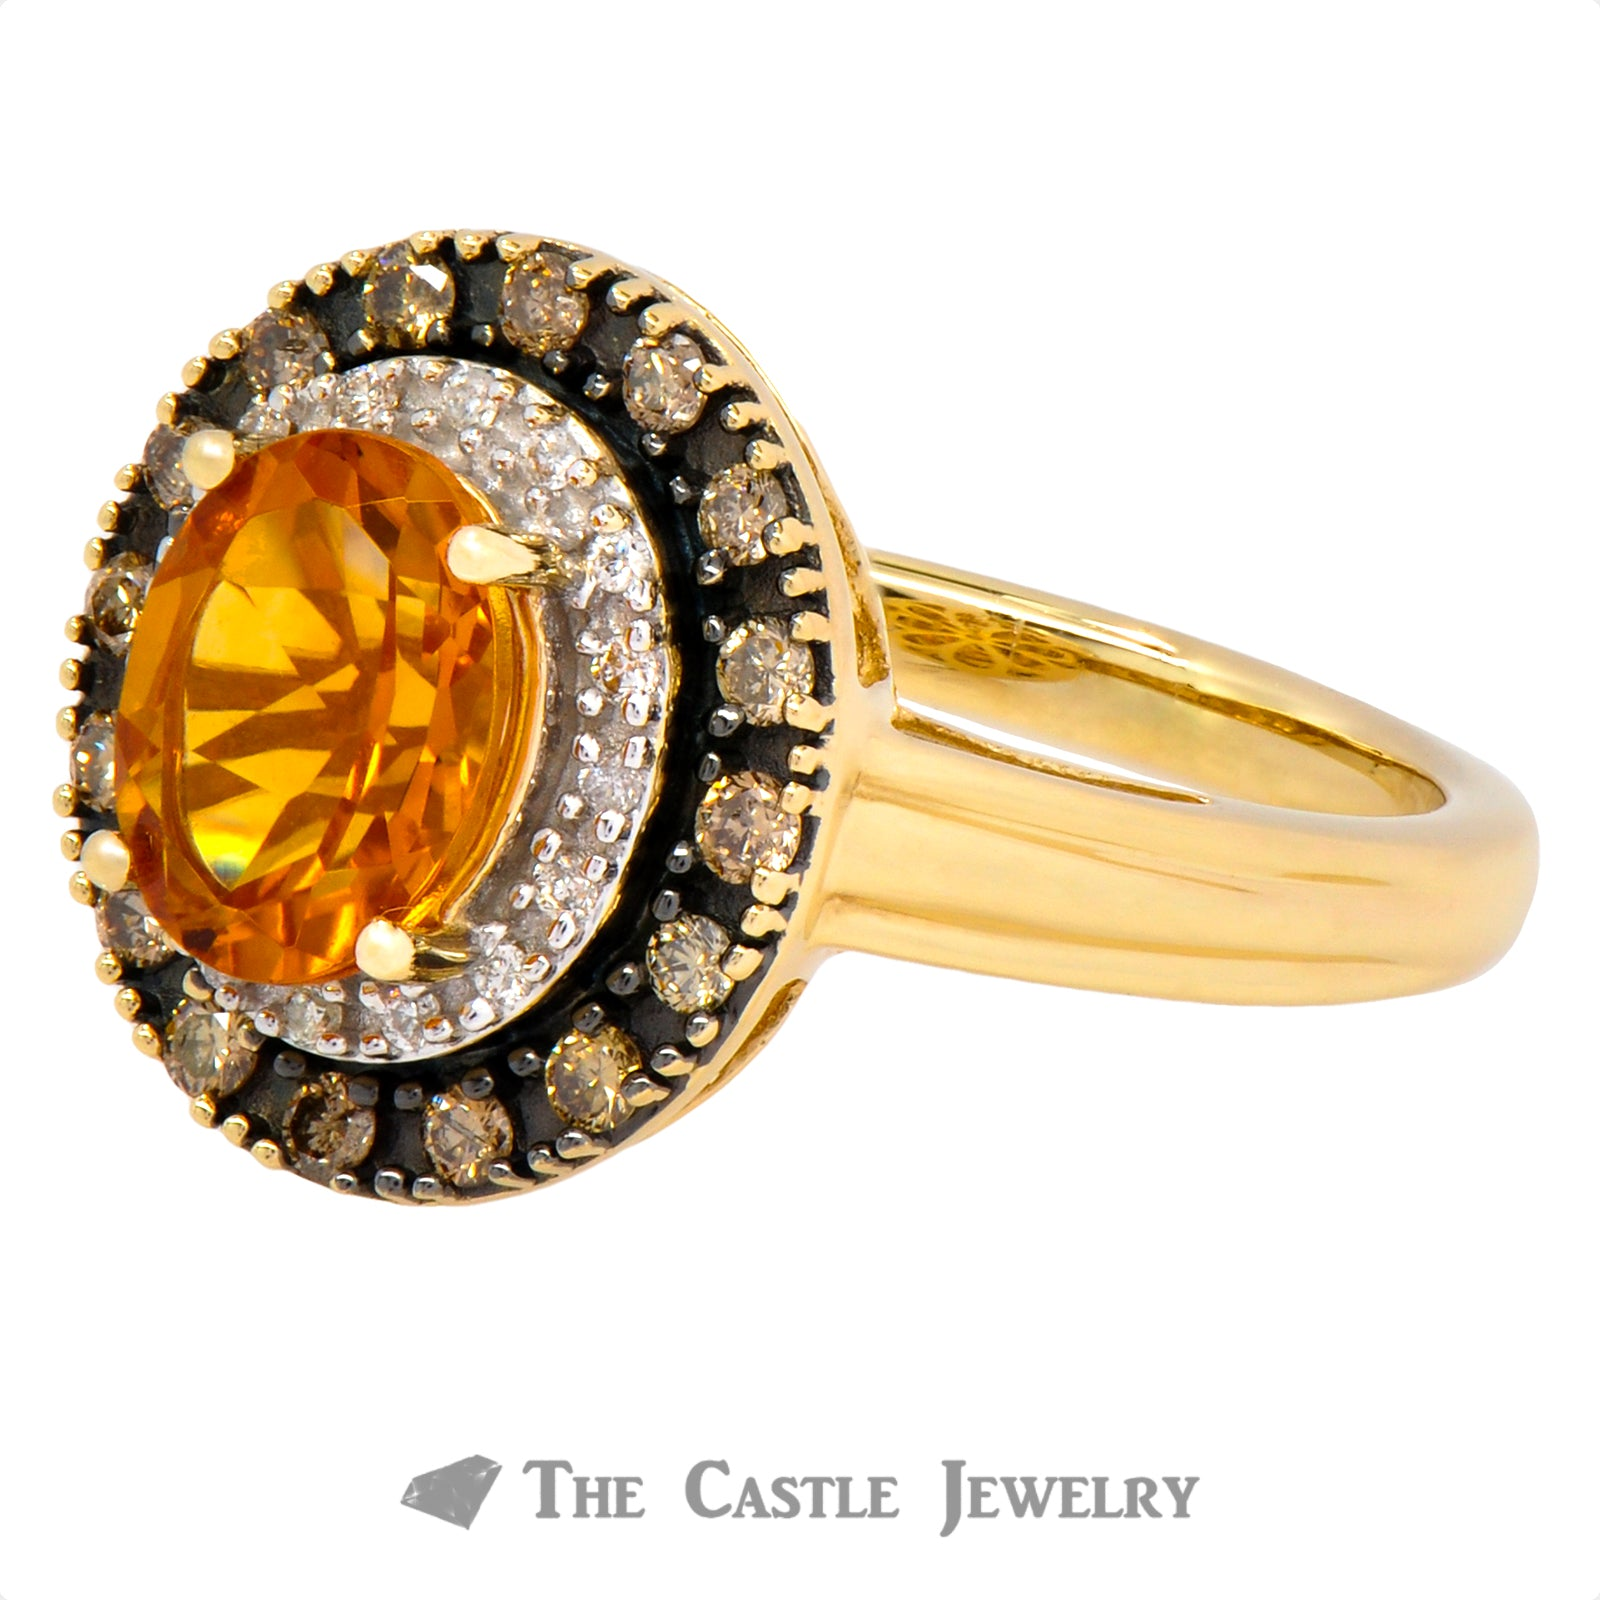 Oval Citrine Double Halo Ring Crafted in 14K Yellow Gold-2